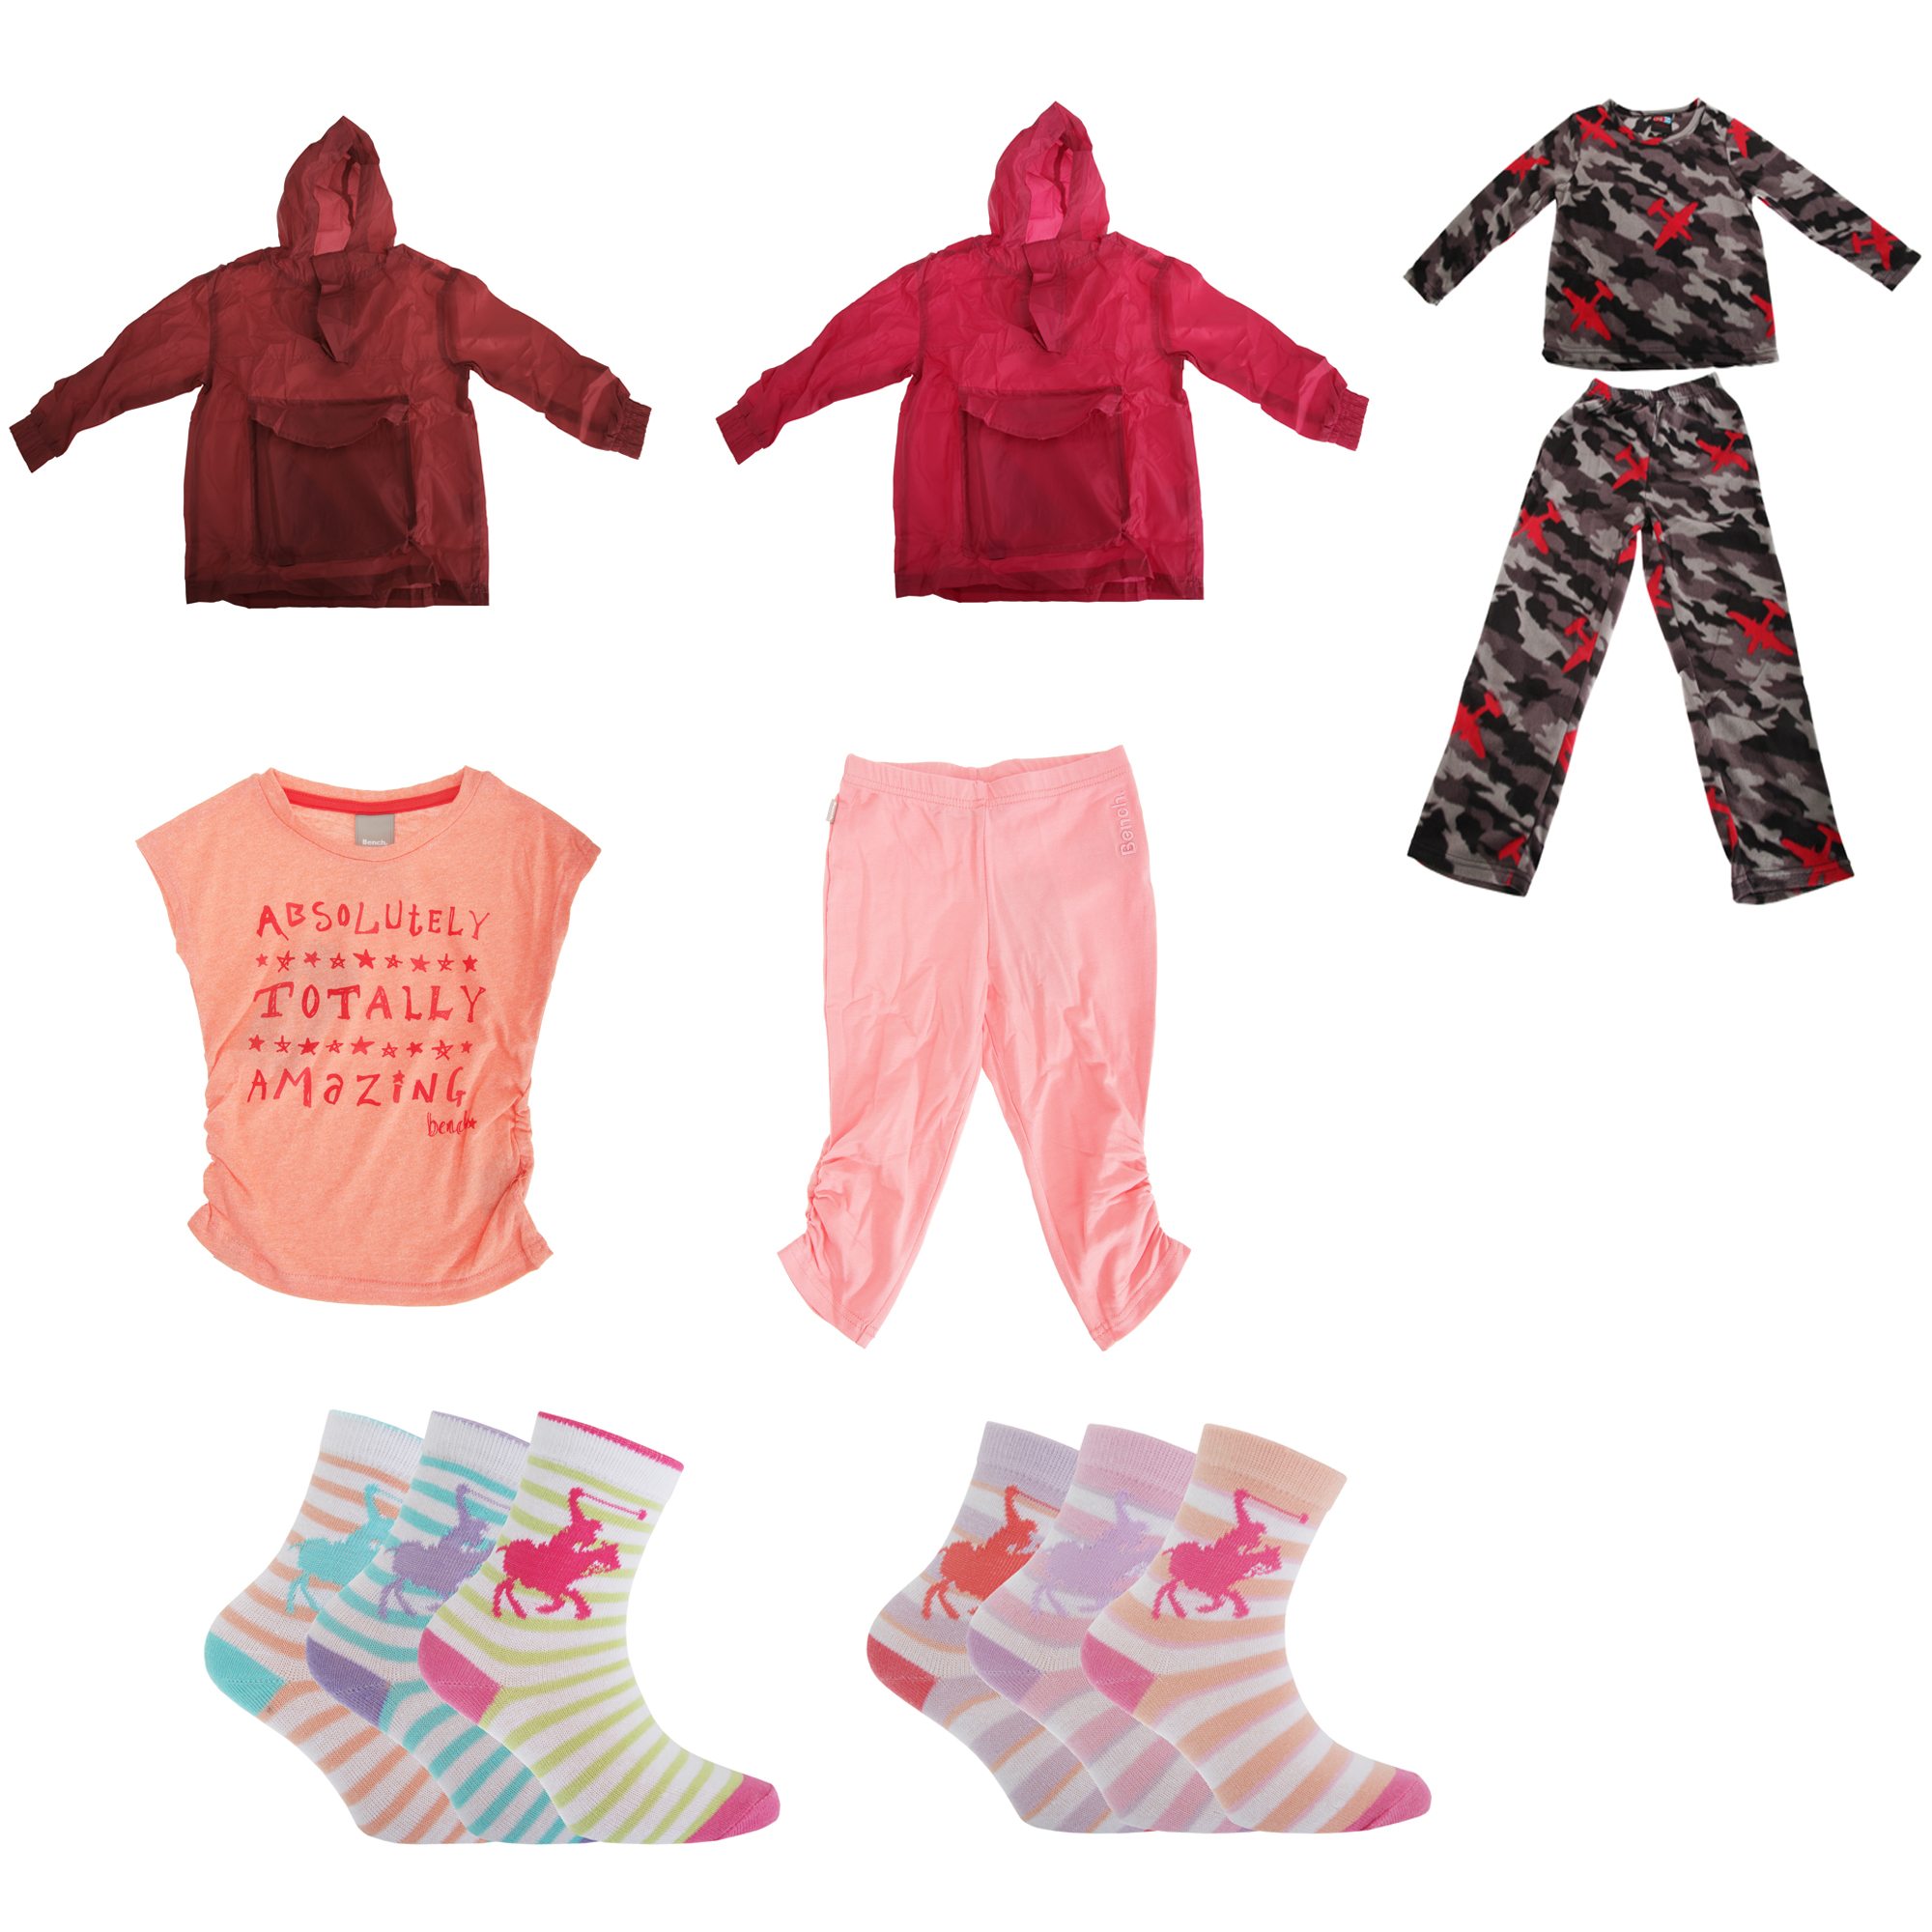 Bulk, Wholesale, Job Lot, Clearance Assorted Clothing (Dresses, Tops, Footwear And More) (Box 8) (Assorted Childrens Clo